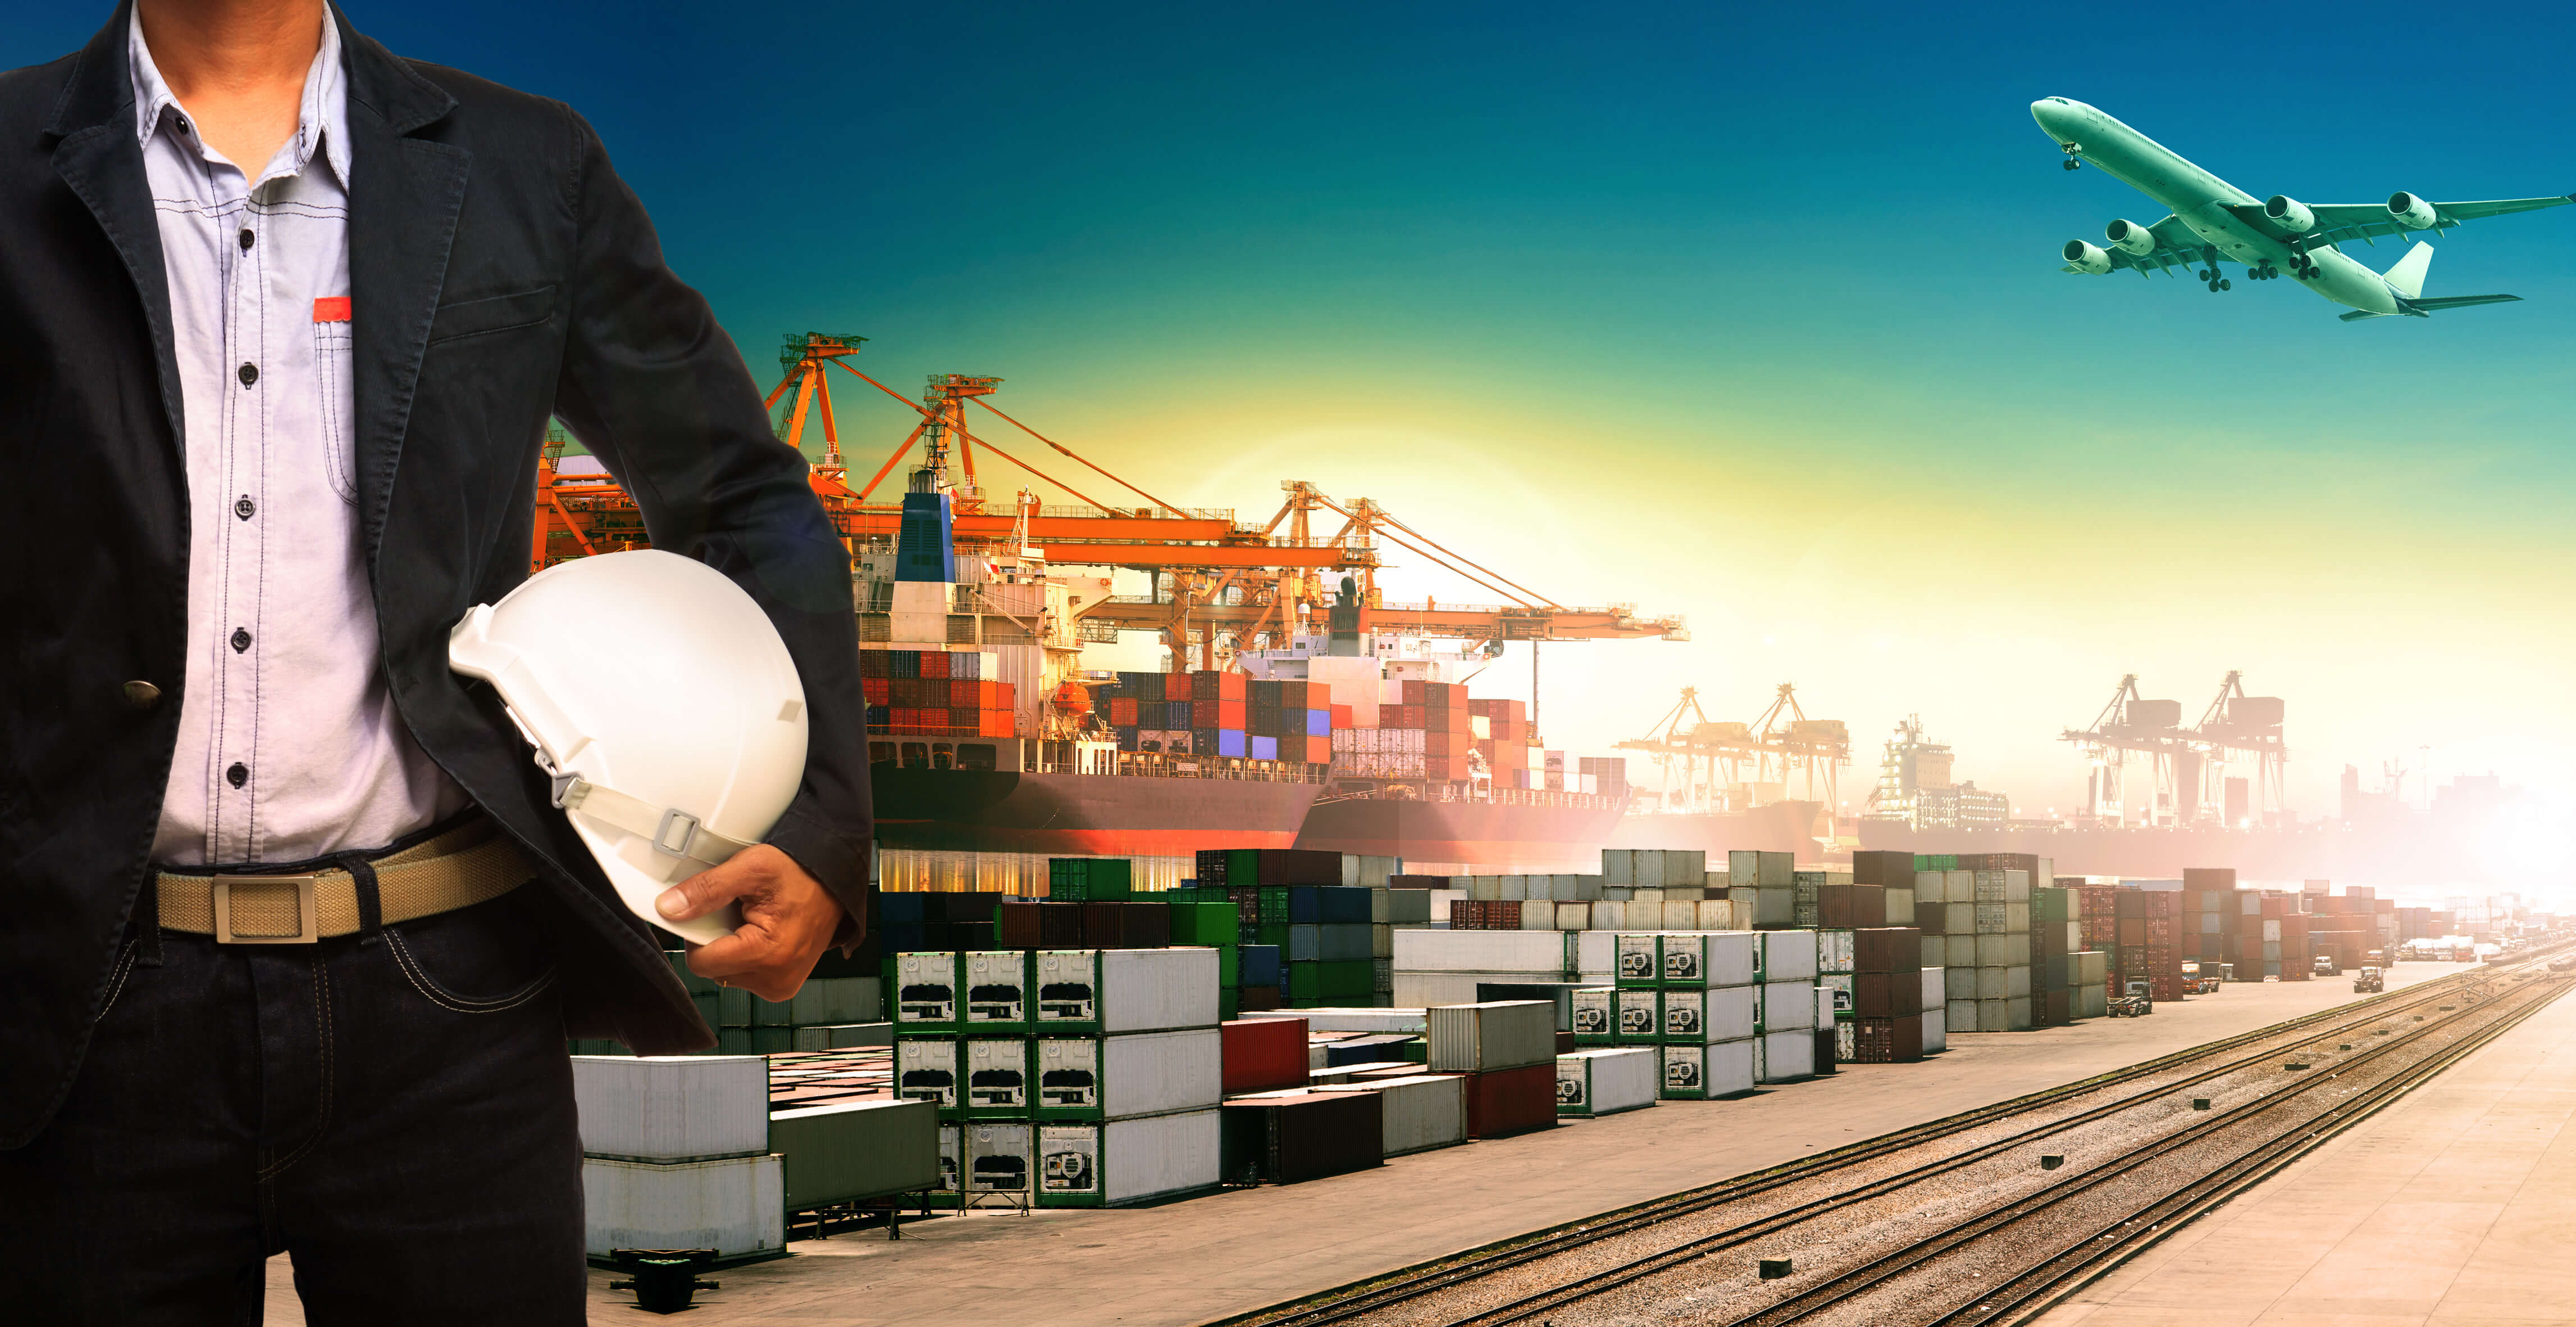 7 reasons to consider a job change in the logistics and